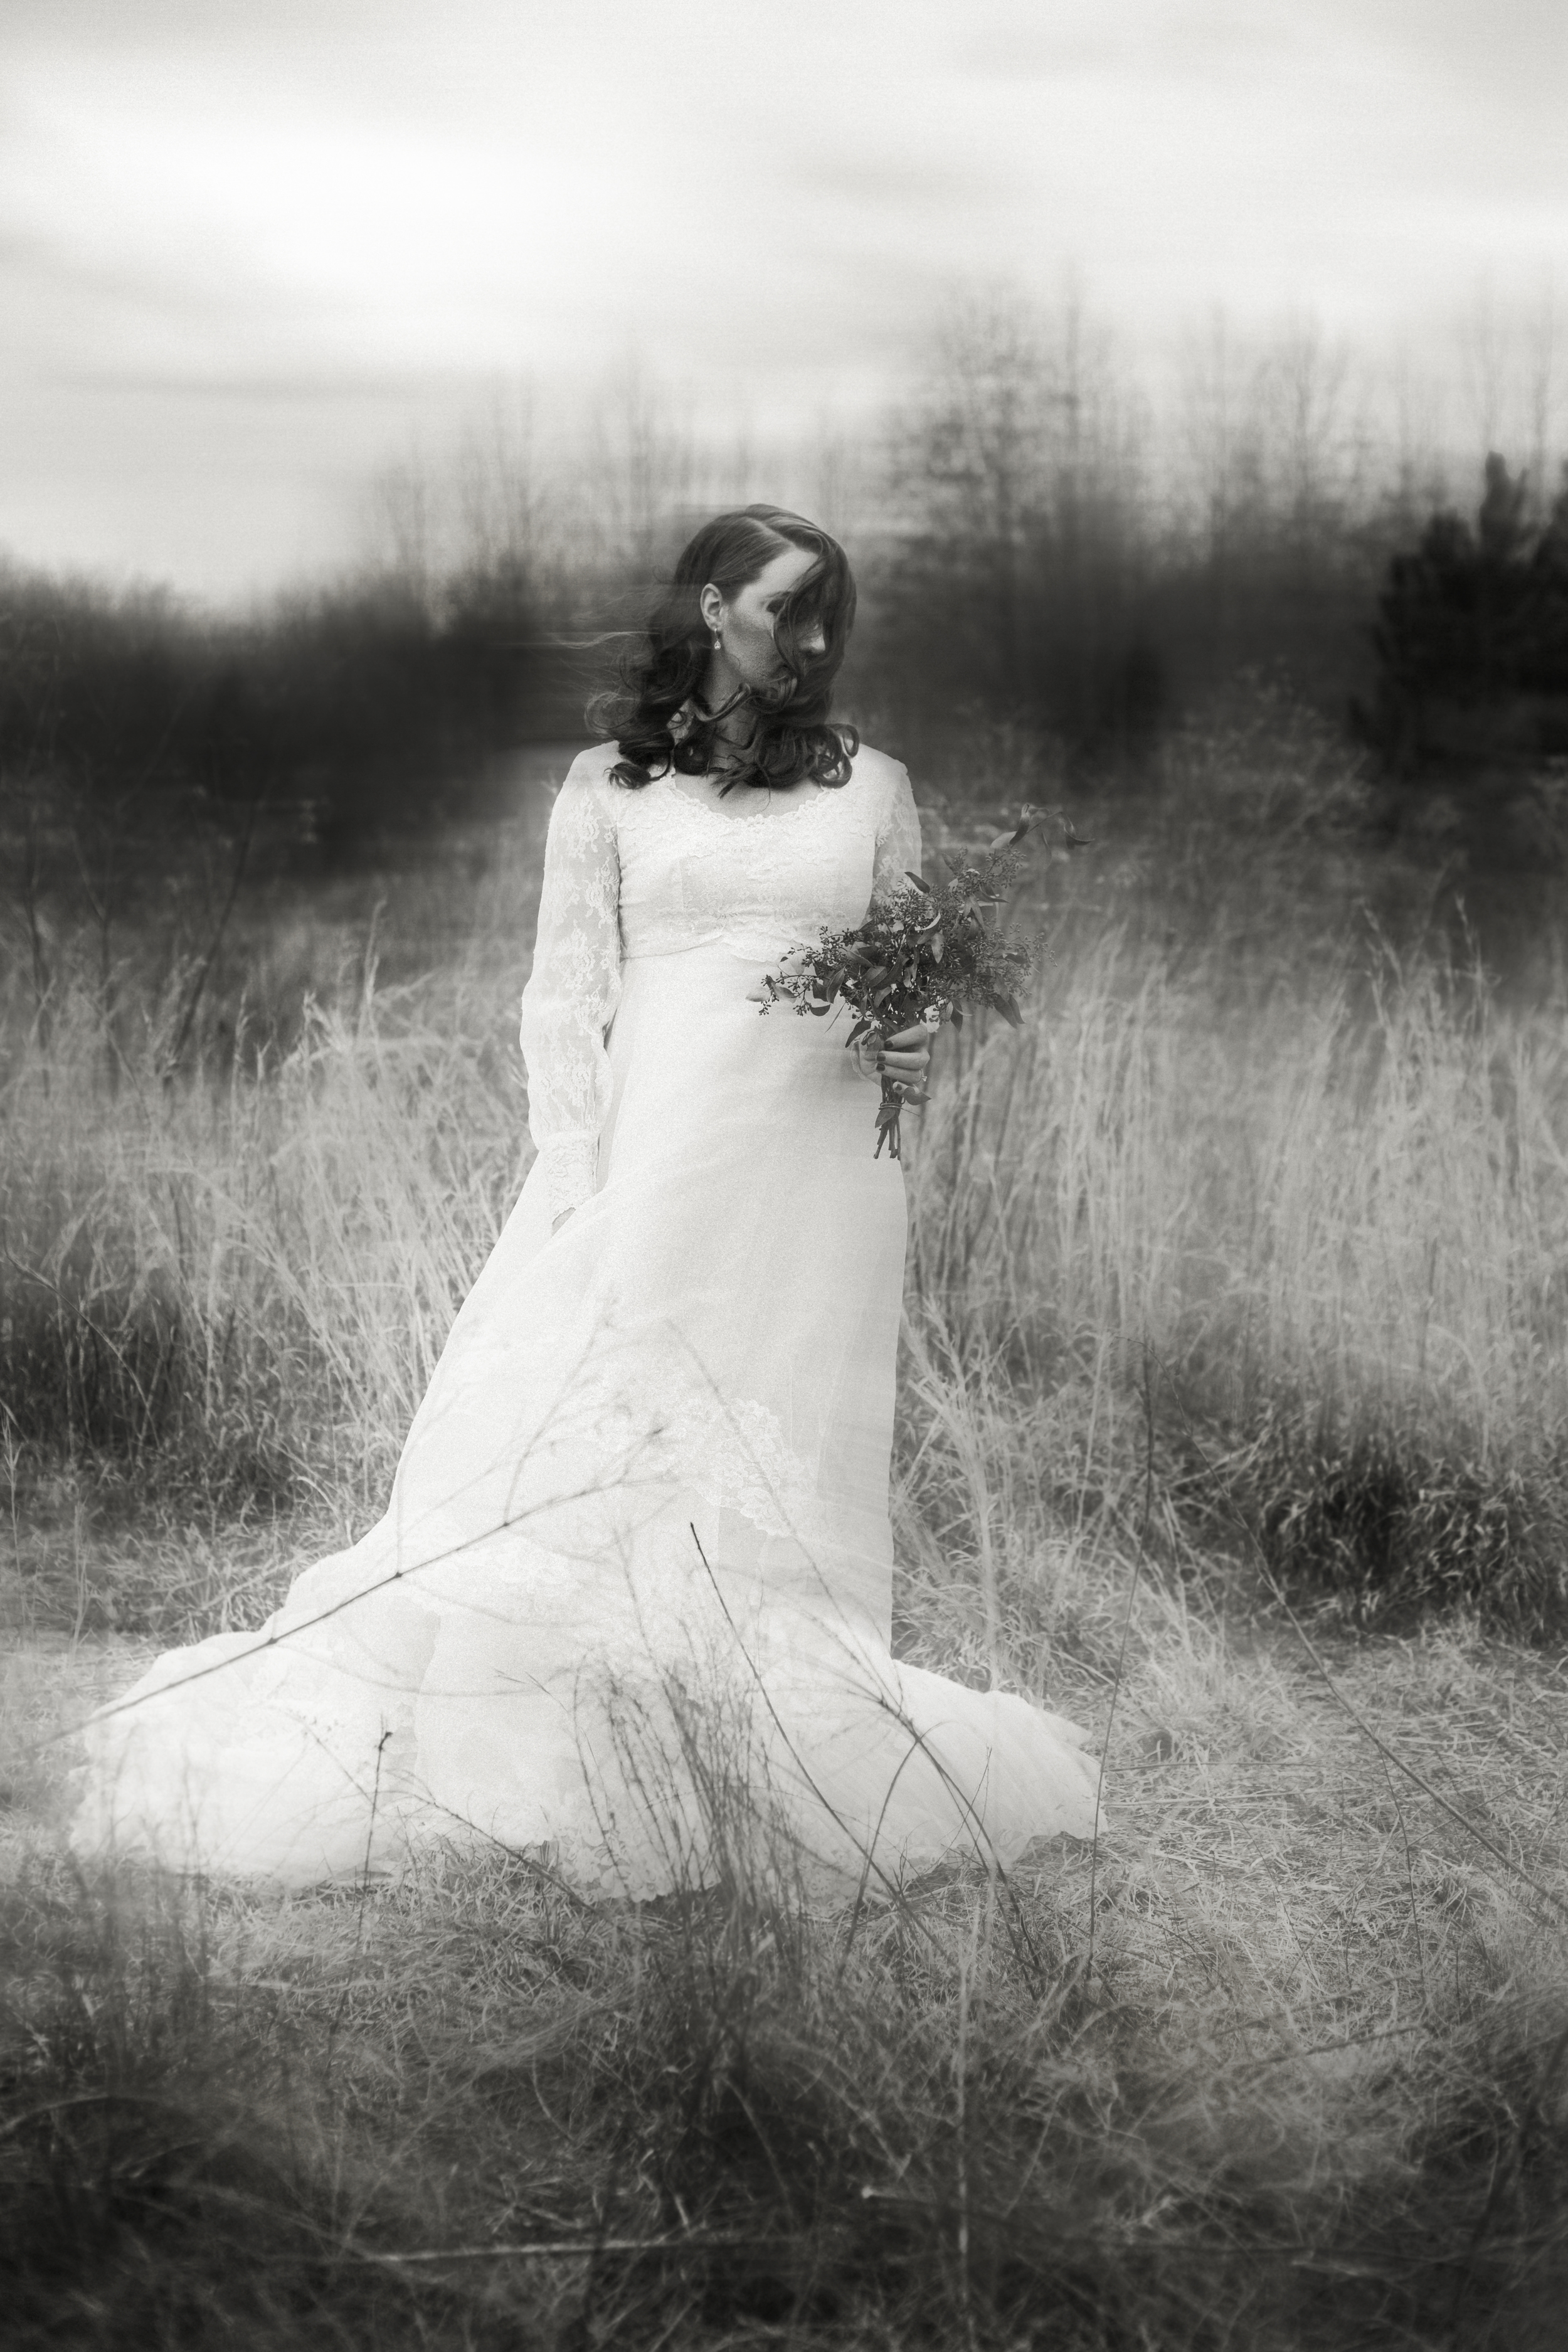 Rebecca_Bridal Portraits_K. Stoddard Photography006.jpg